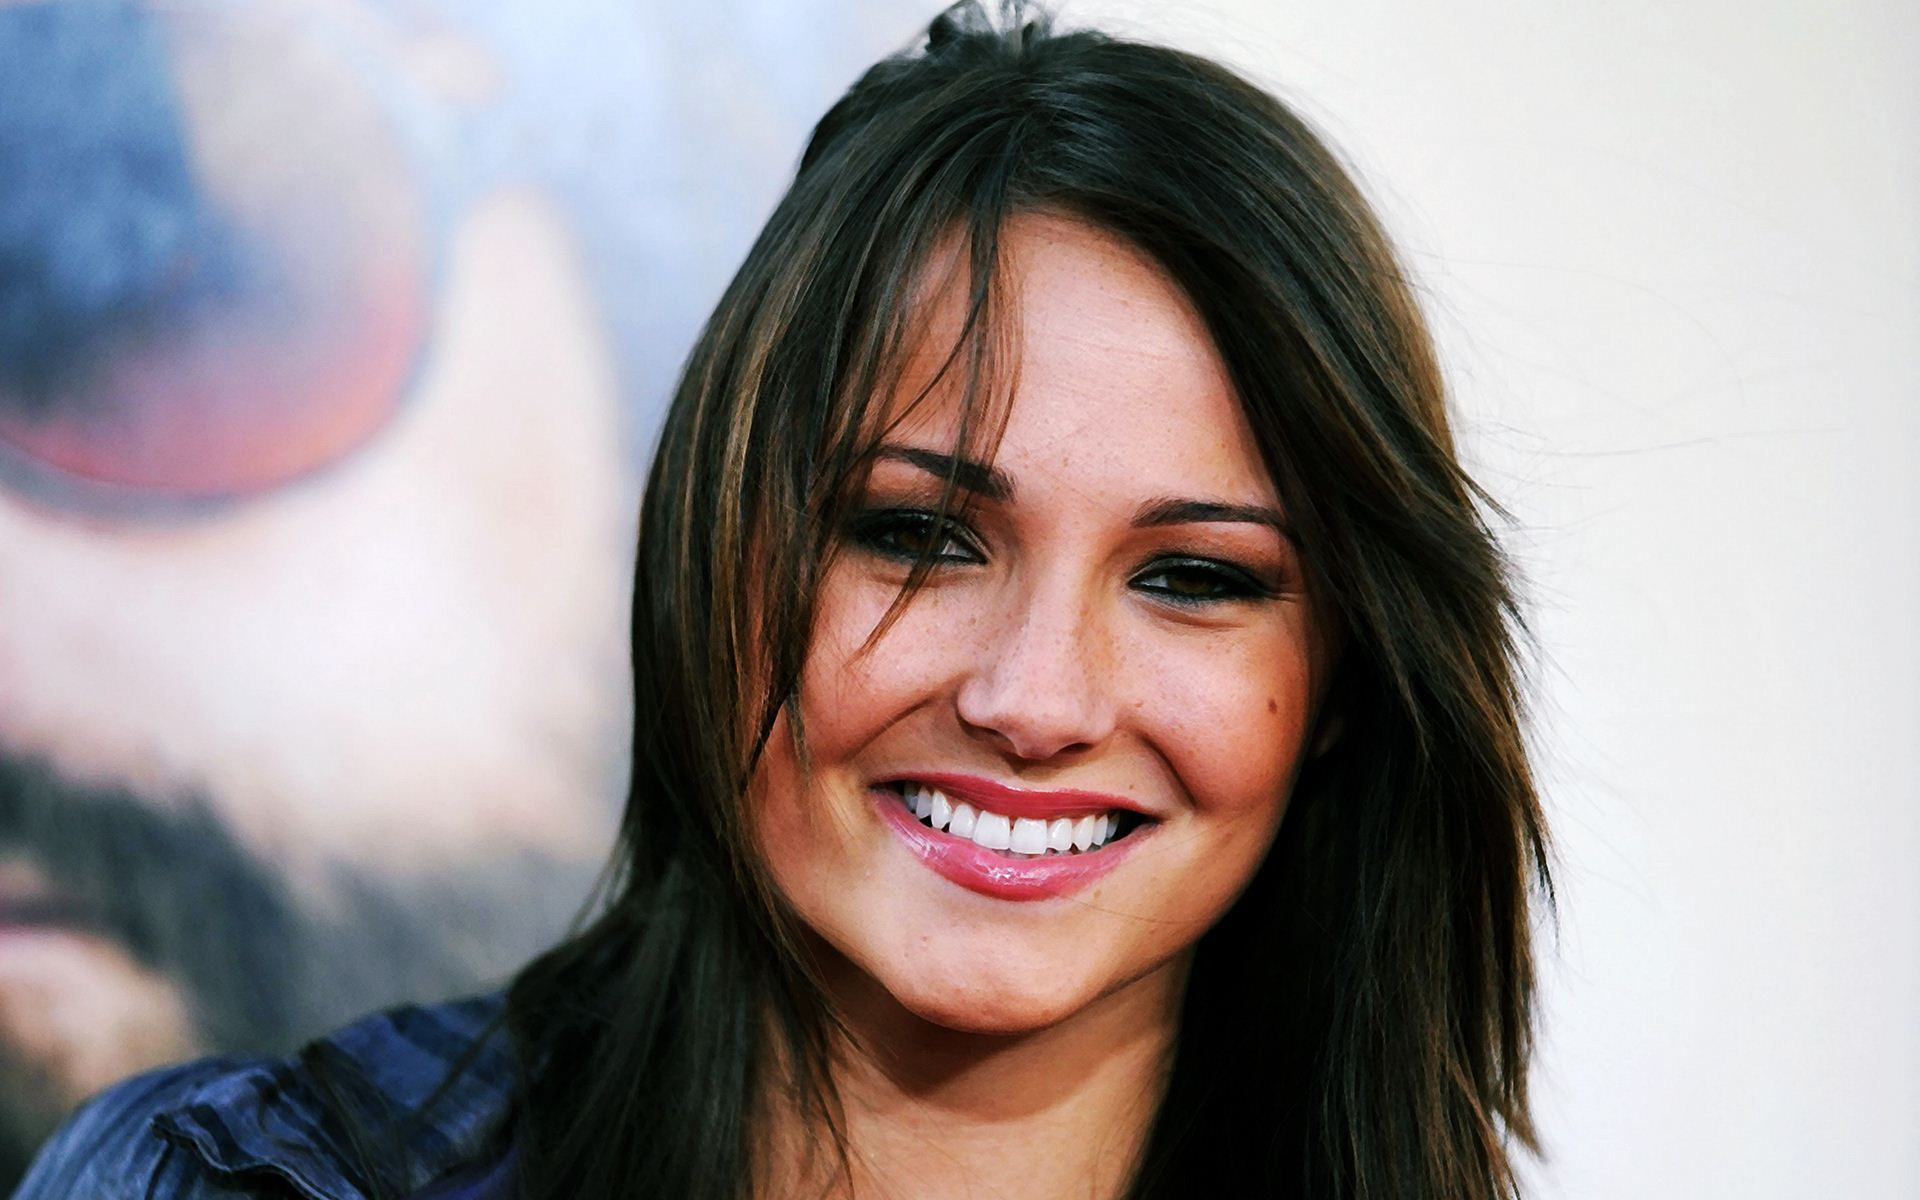 17 best ideas about Briana Evigan on Pinterest | Step up, Step up ...